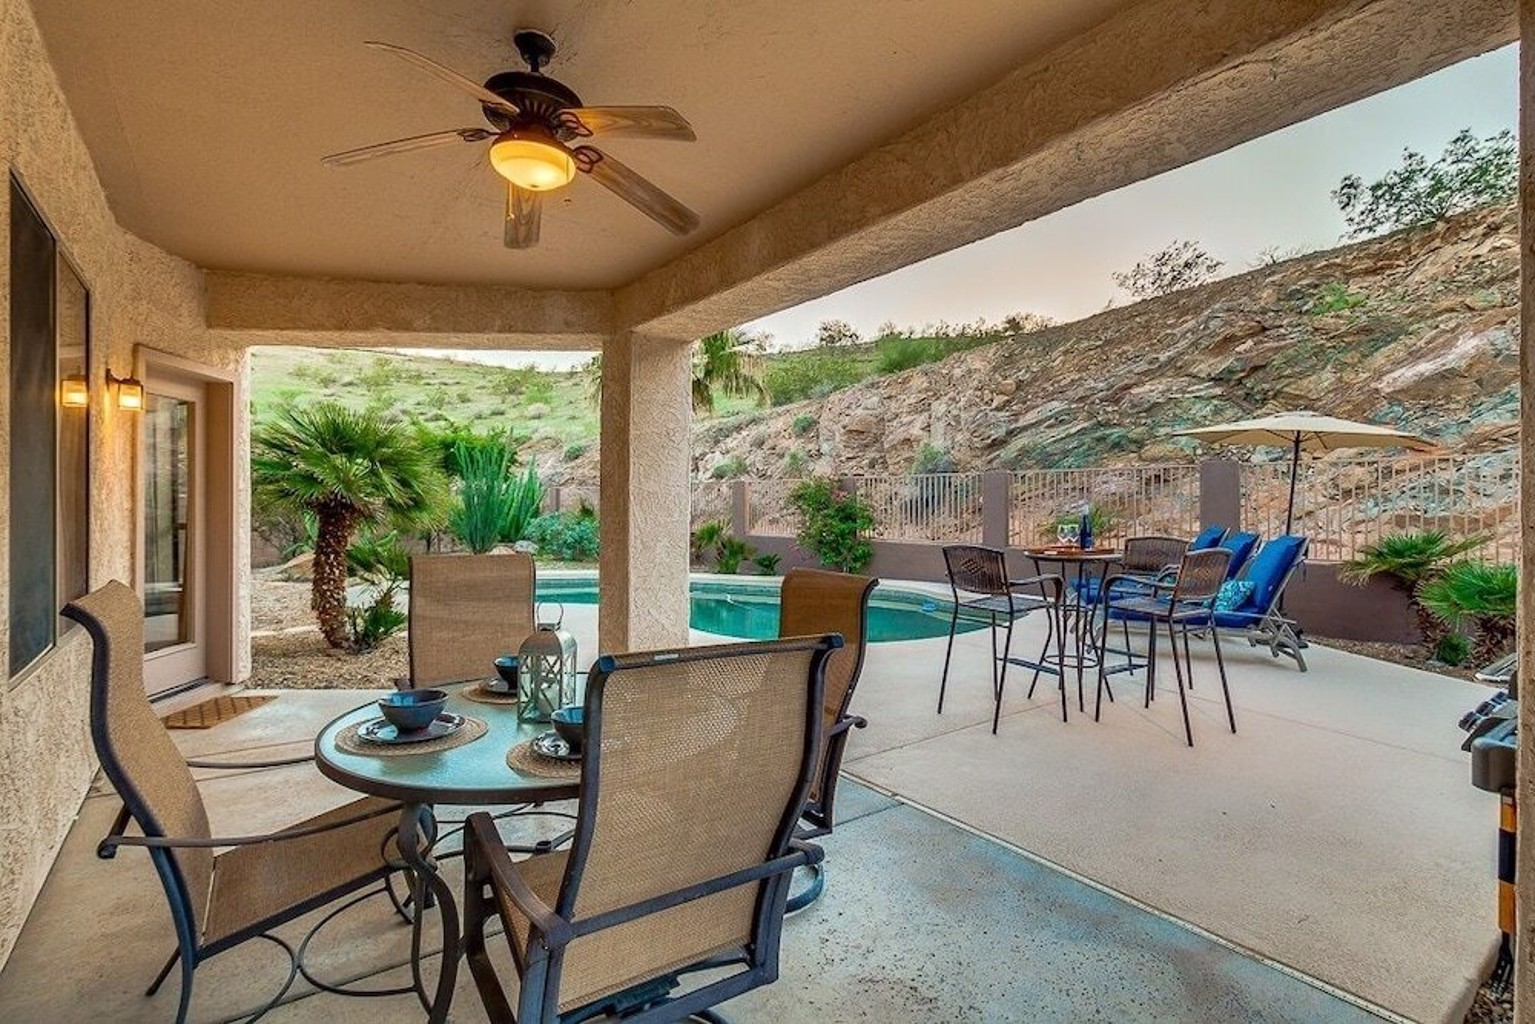 Luxurious 4 Bedroom 2.5 Bath With Resort Style Private Backyard and Up